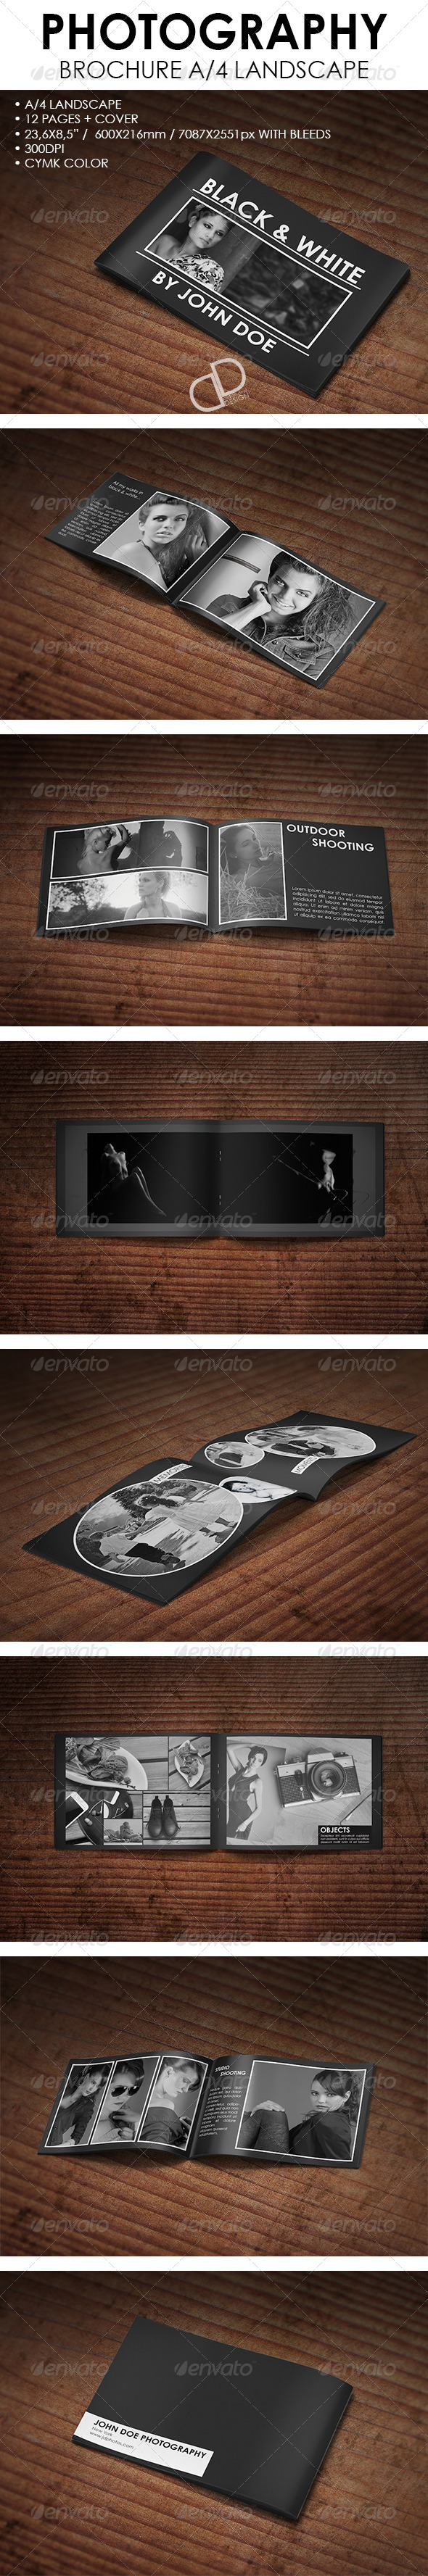 GraphicRiver Photography Bochure A4 Landscape 6744517